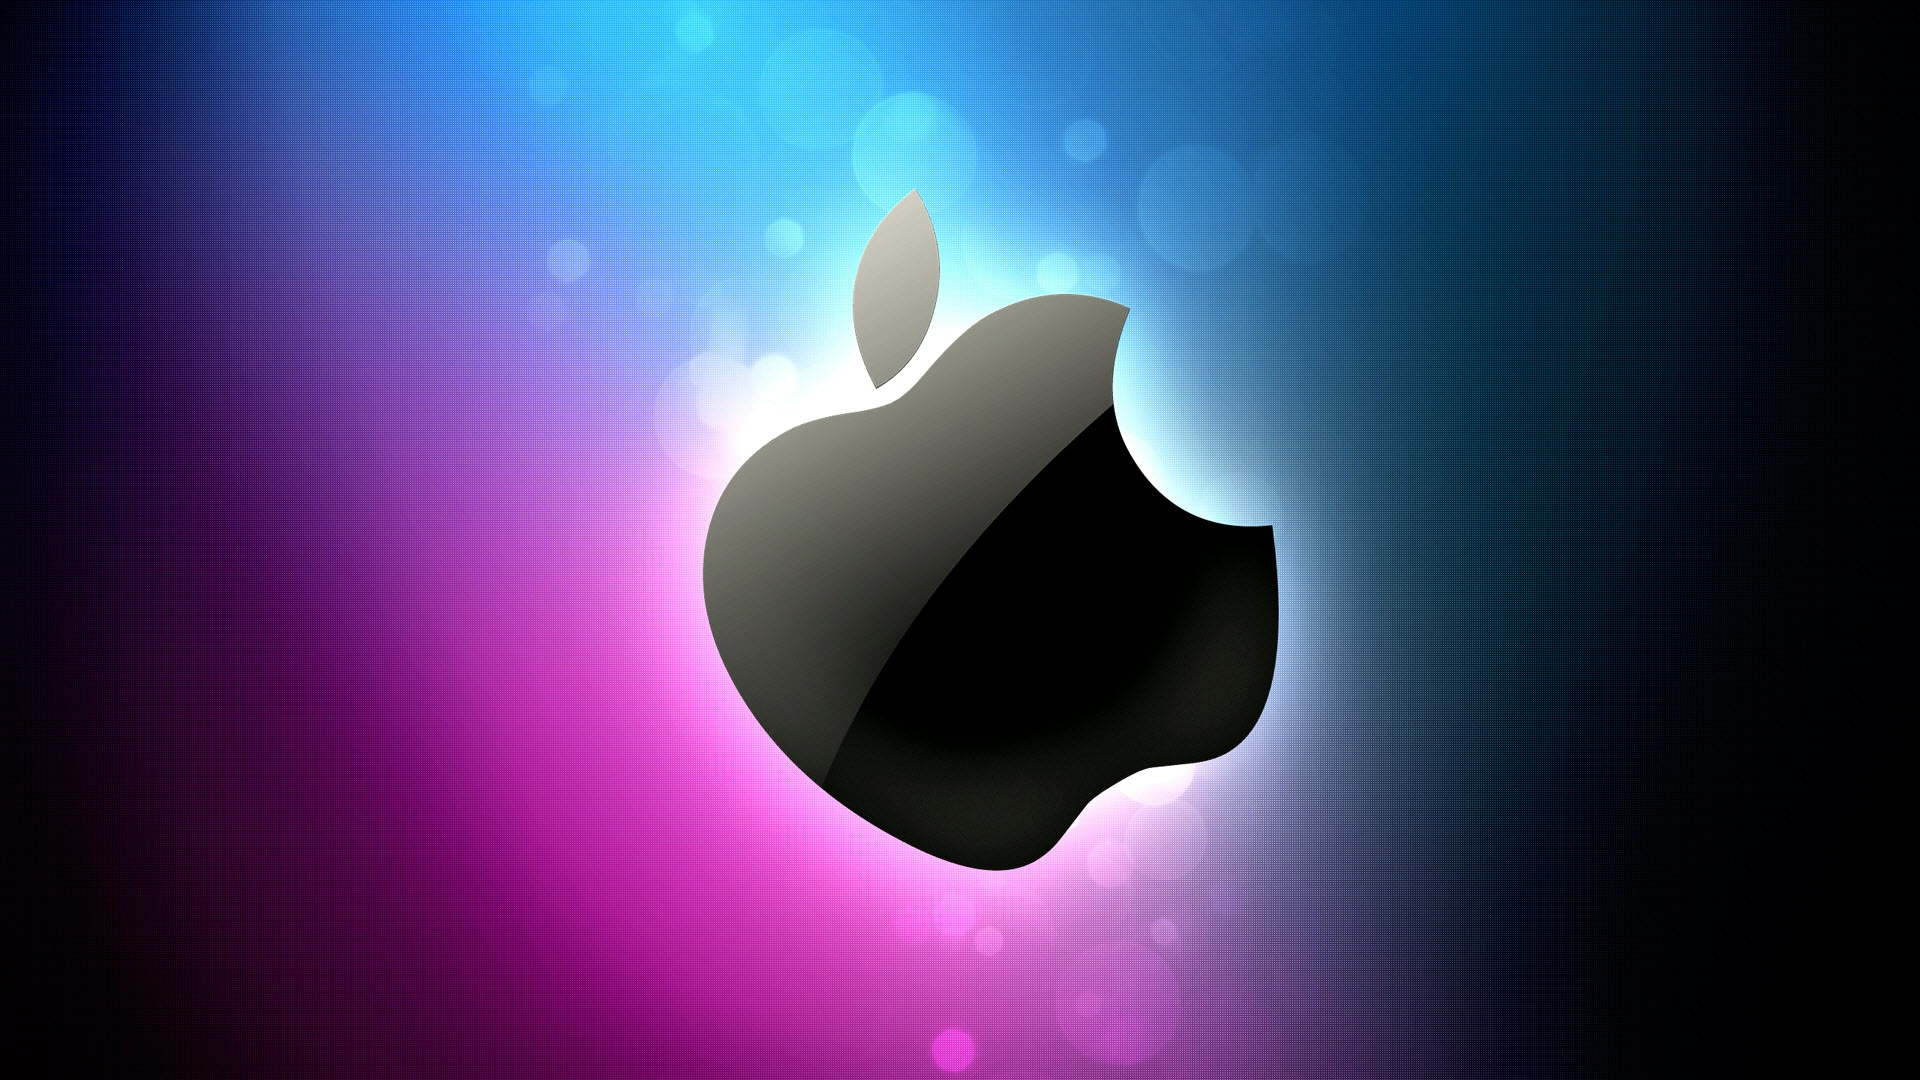 HD Apple Wallpaper